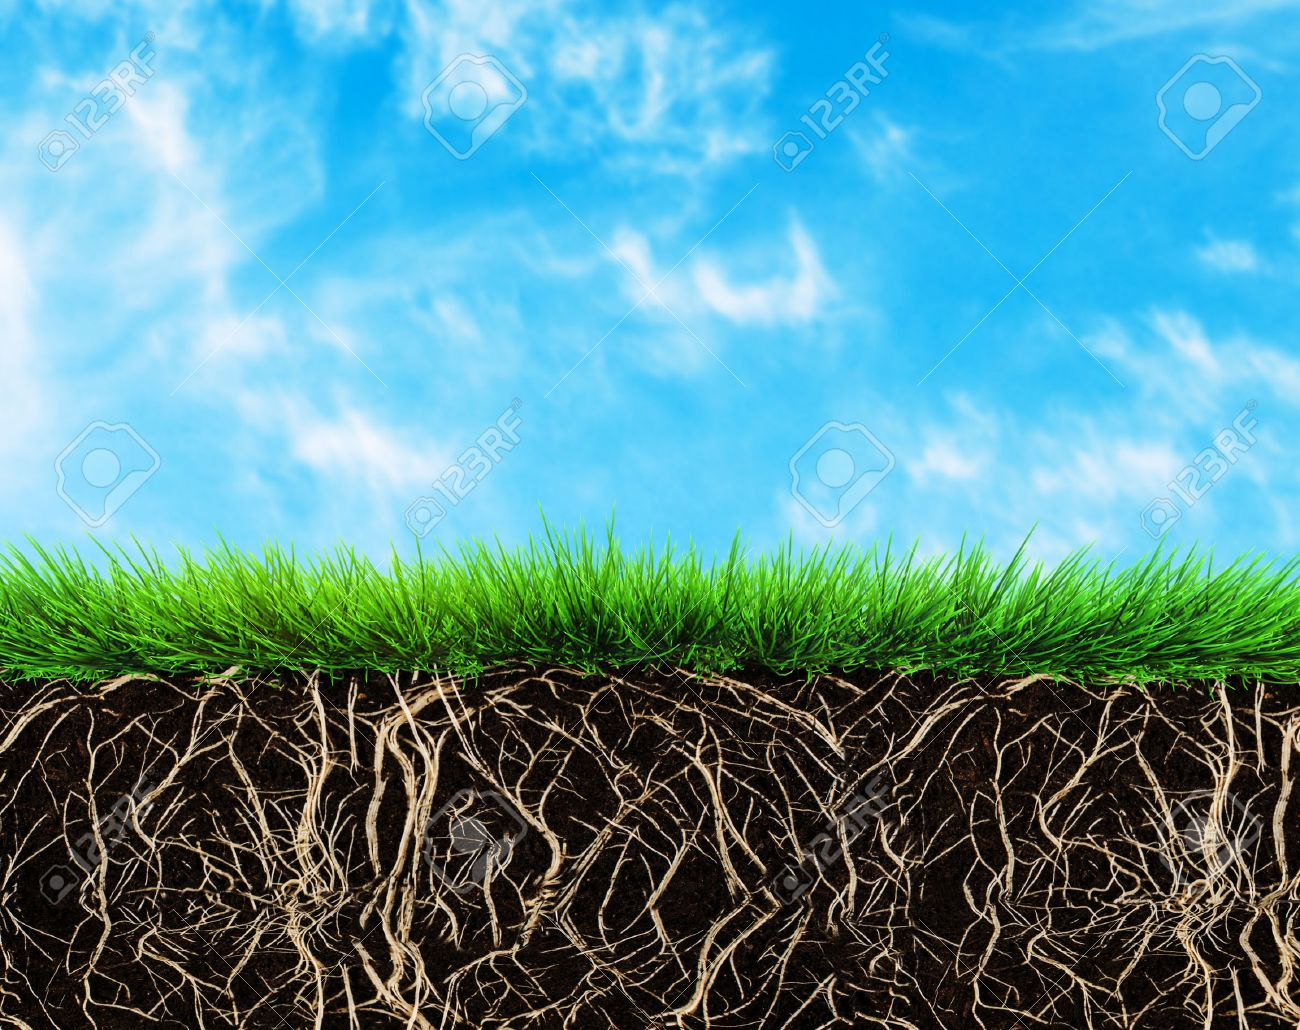 grass with roots and soil - 35362494